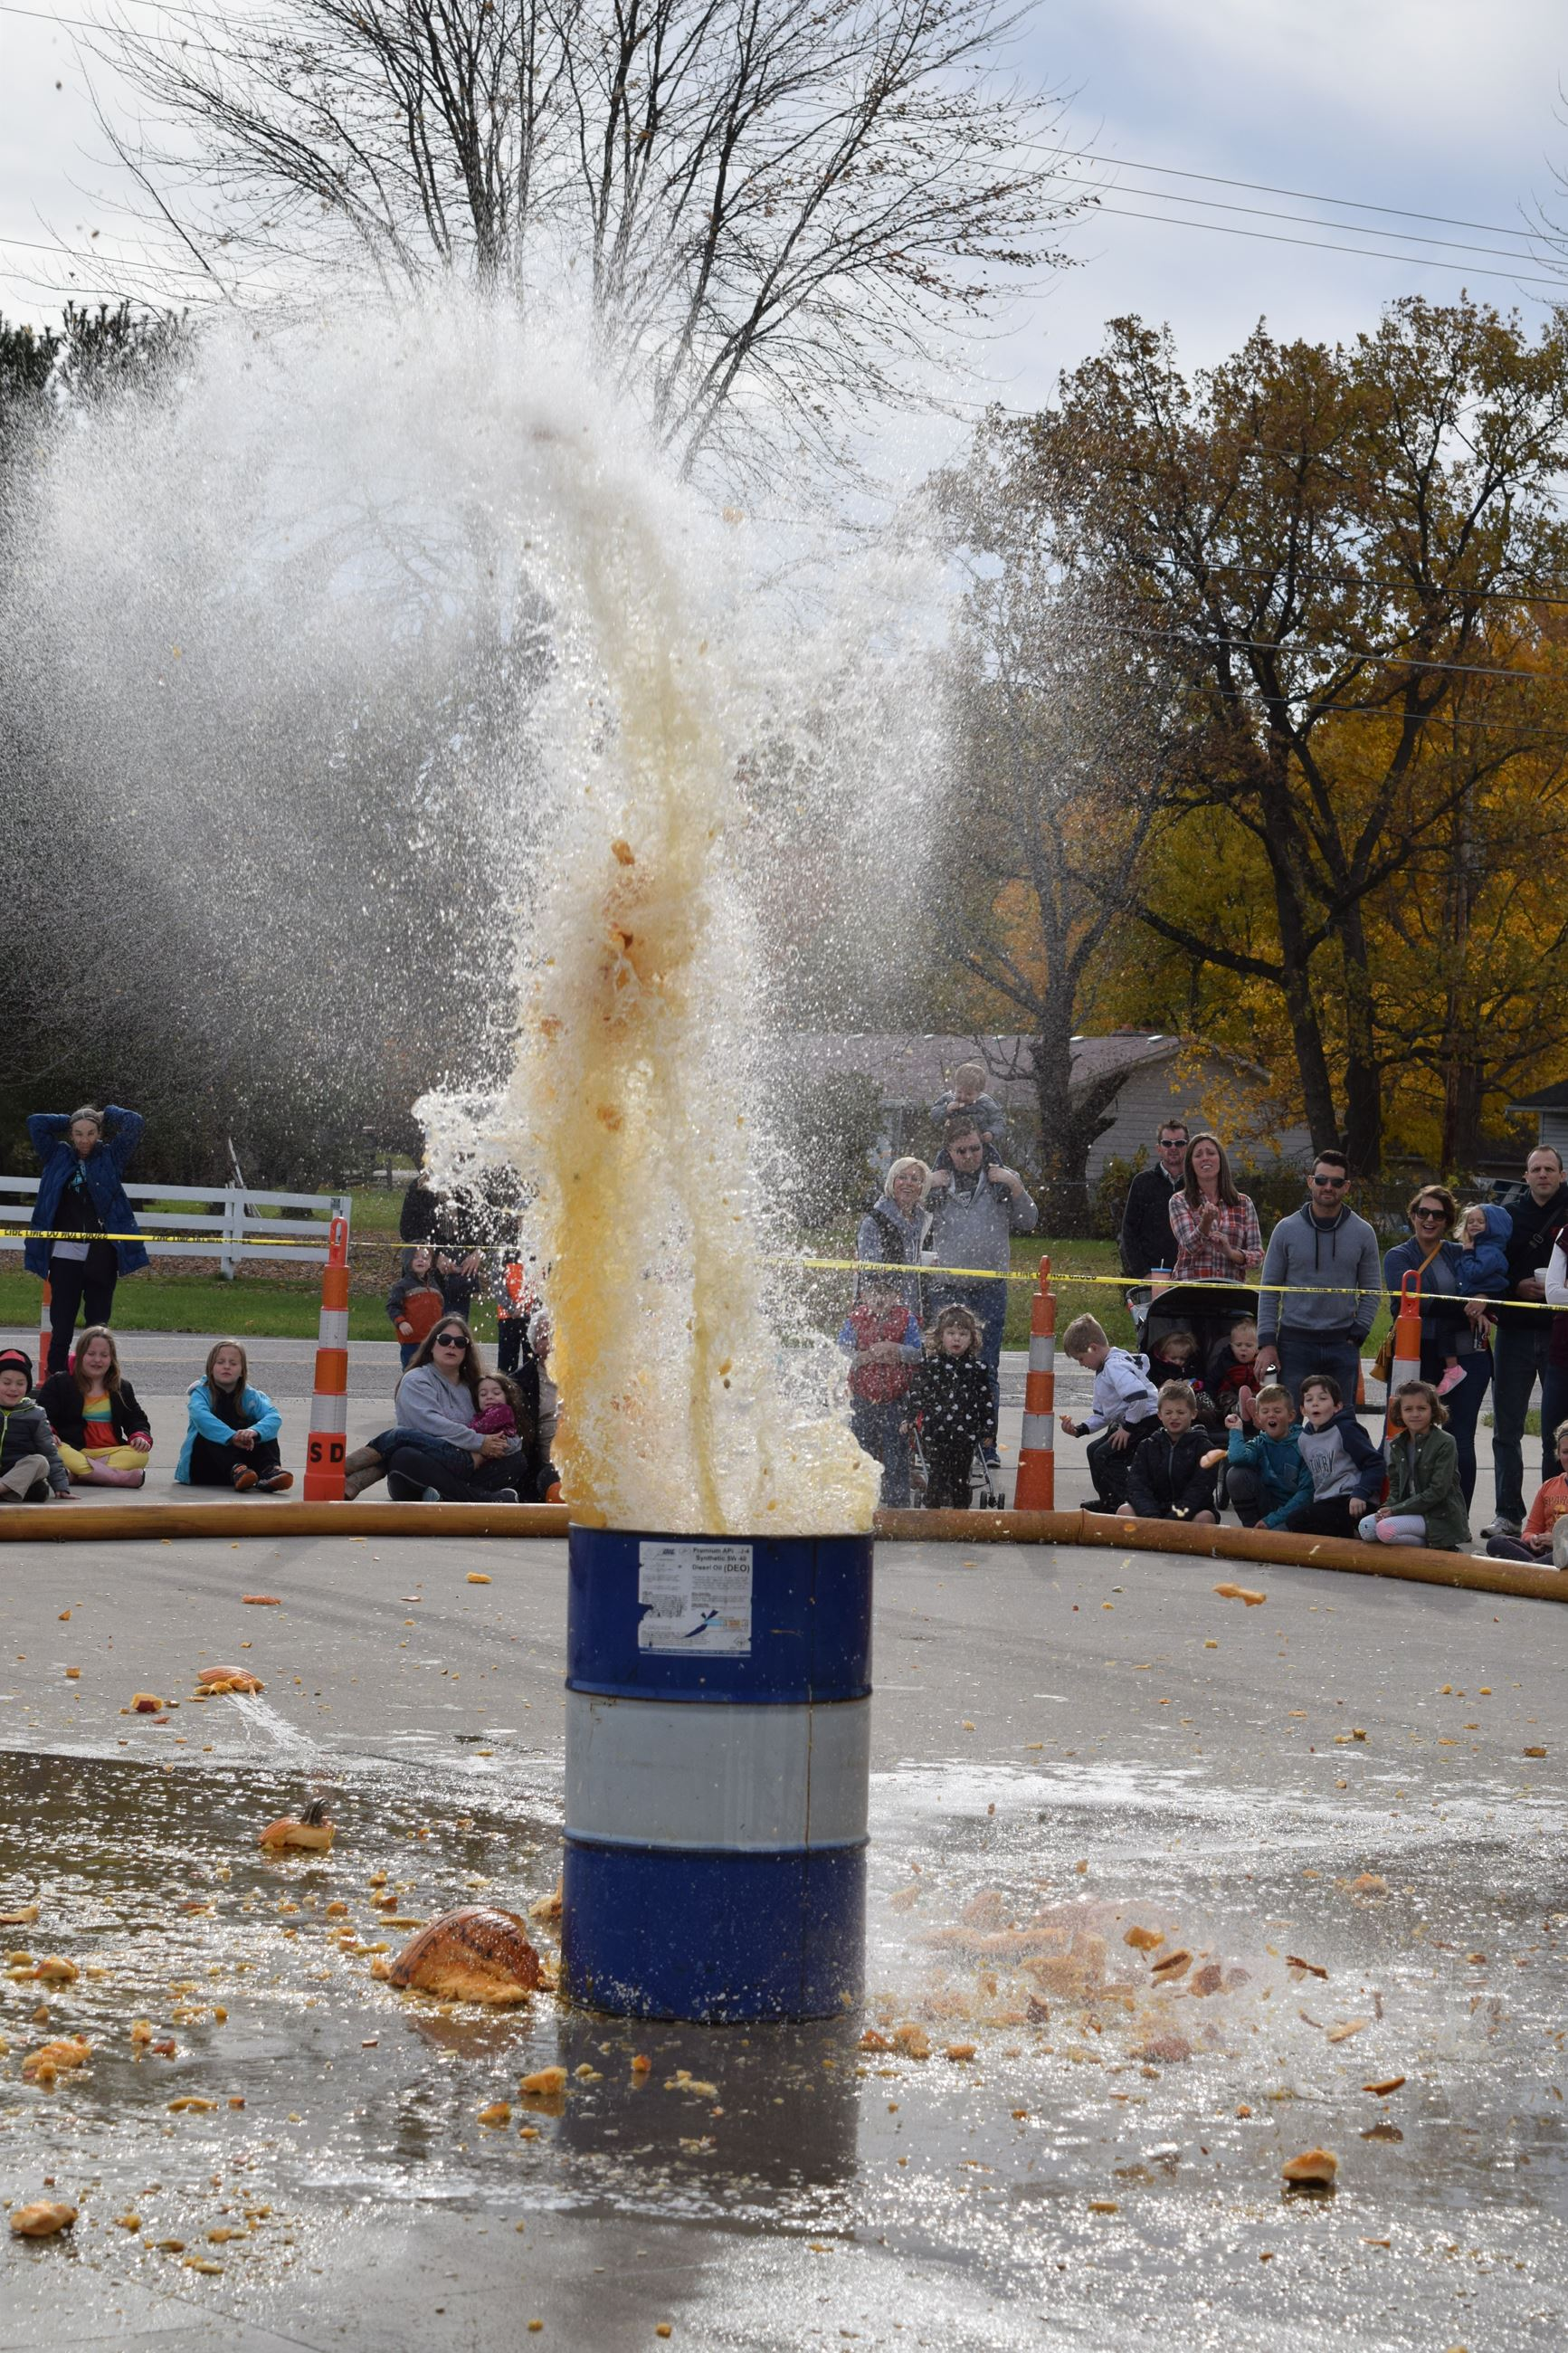 Photo of pumpkin splashing into barrel of water